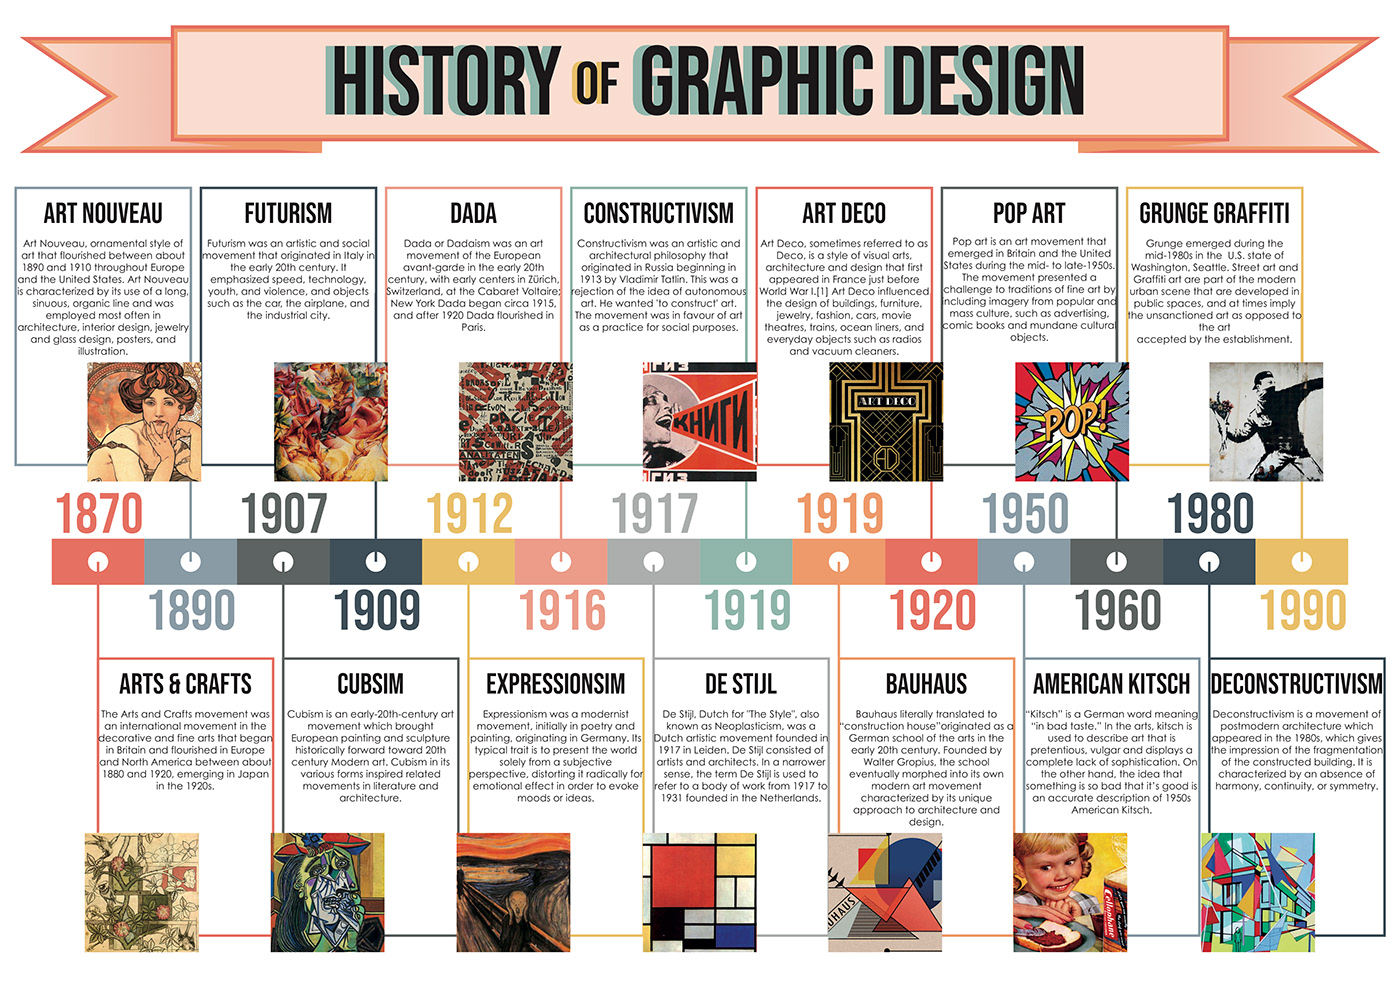 History of Graphic Design Timeline Infographic on Behance